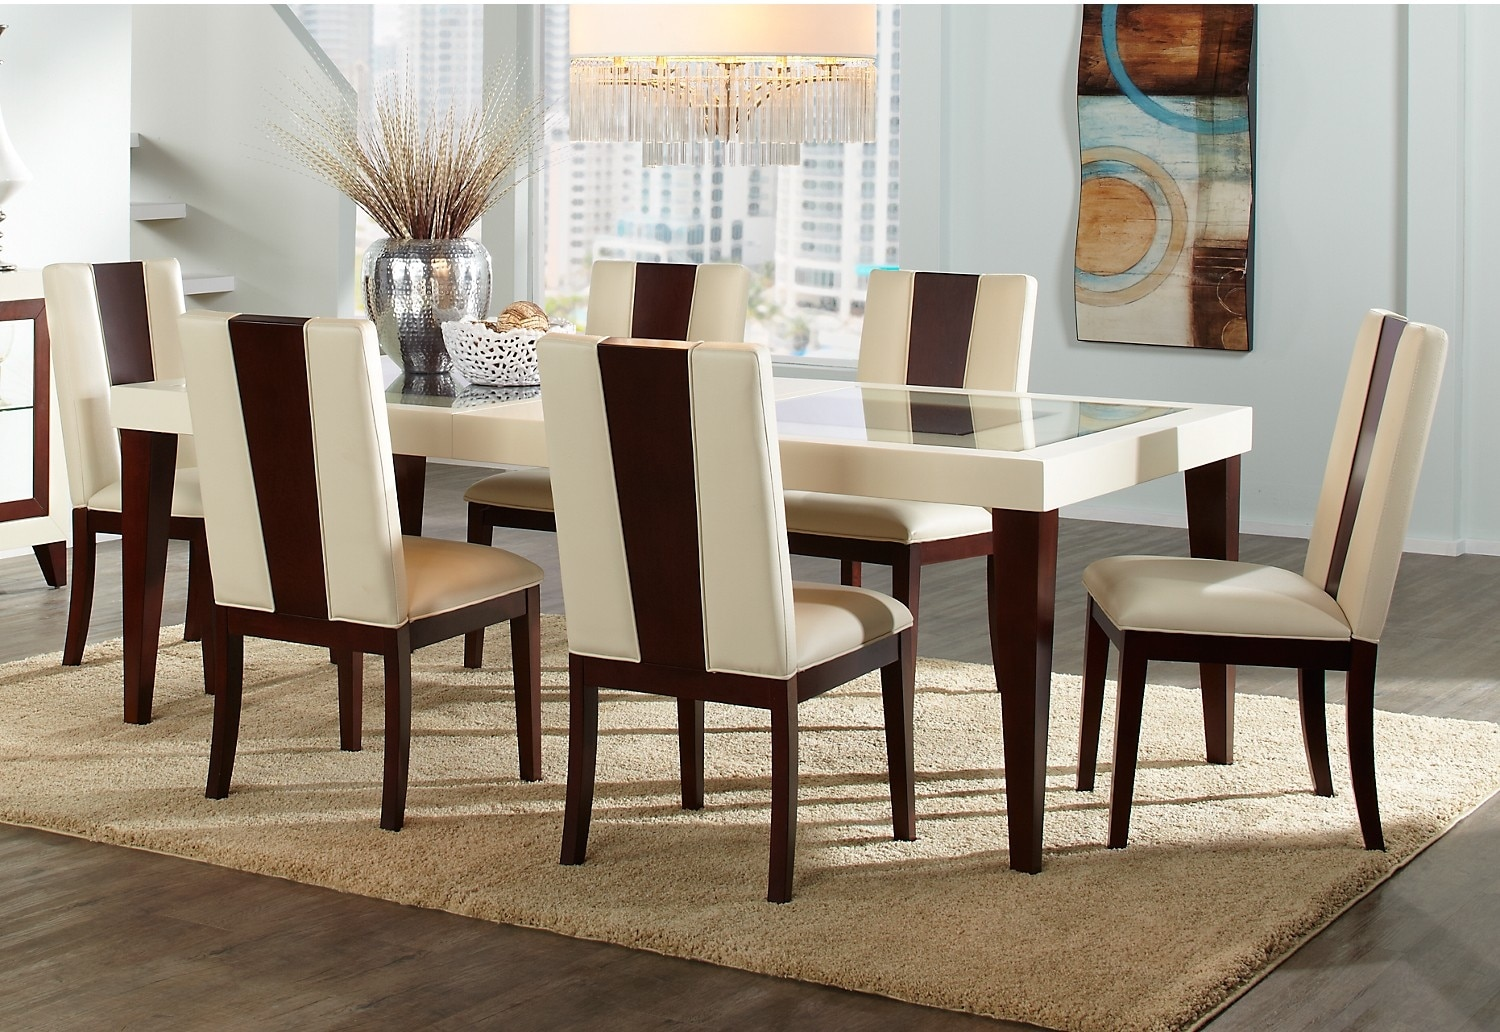 The Brick Dining Room Sets Canada Dining Room Sets Design